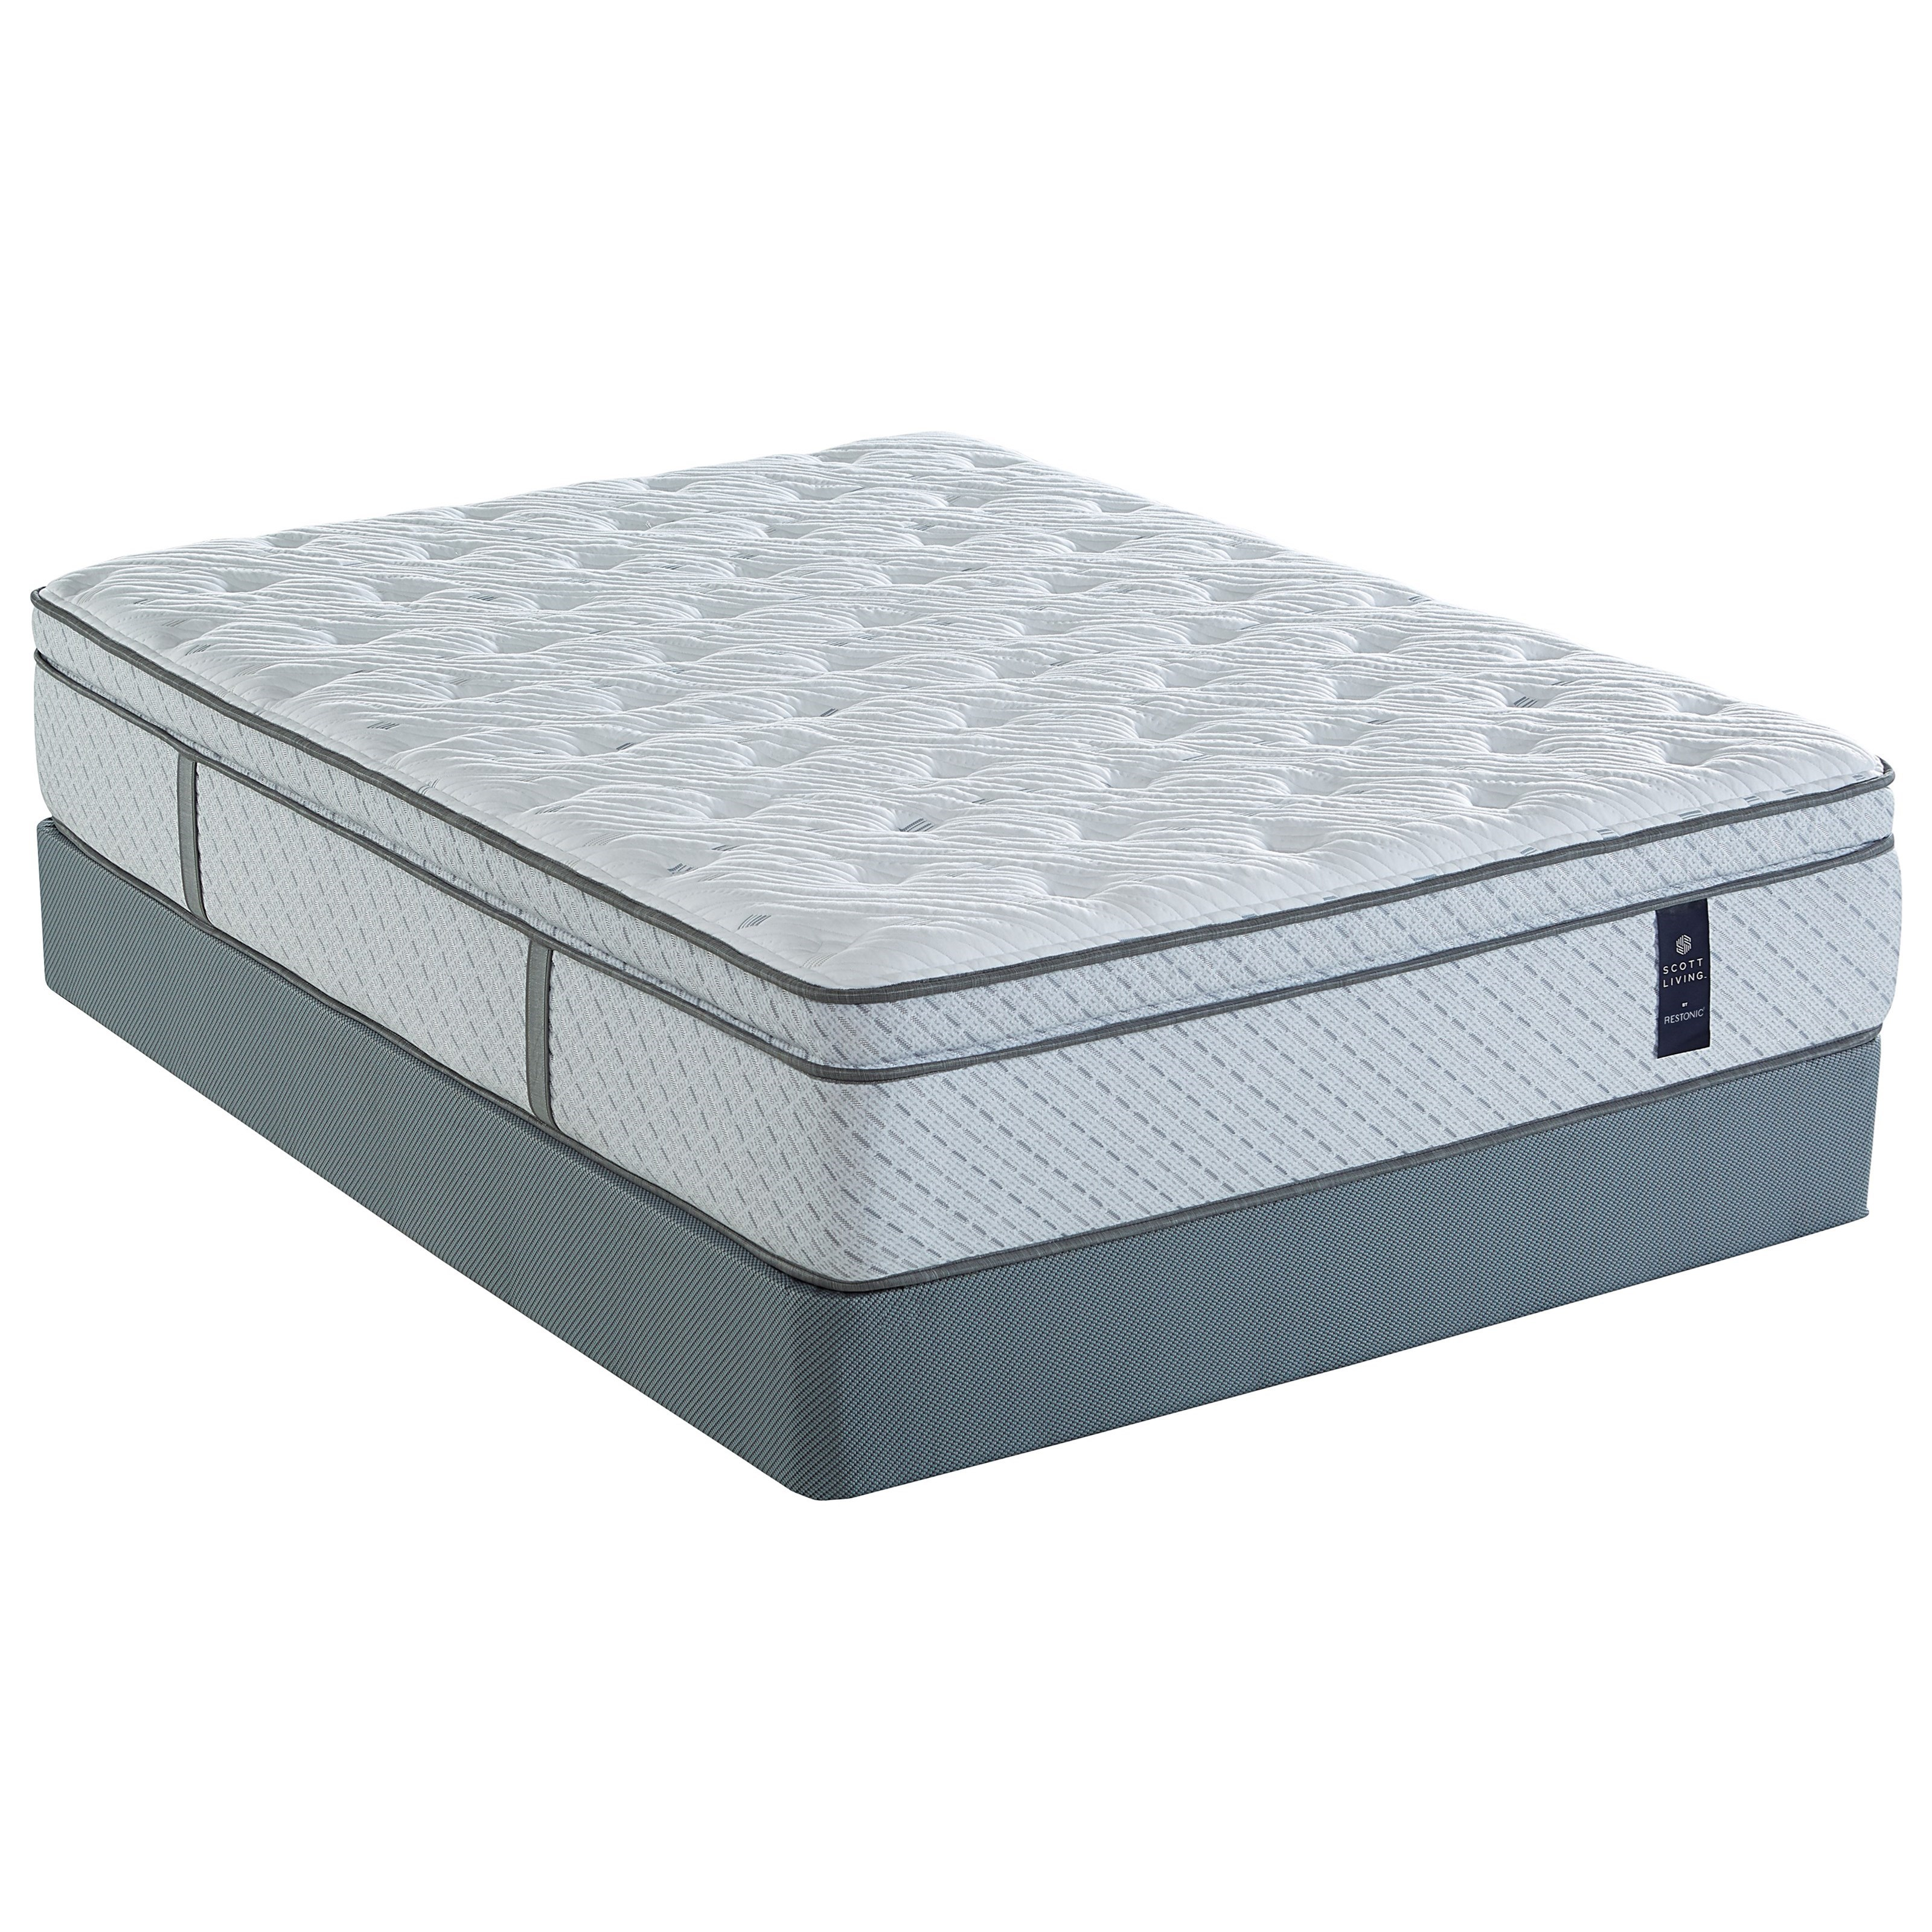 Biltmore Elmwood ET King Pocketed Coil Mattress Set by Restonic at Wilcox Furniture